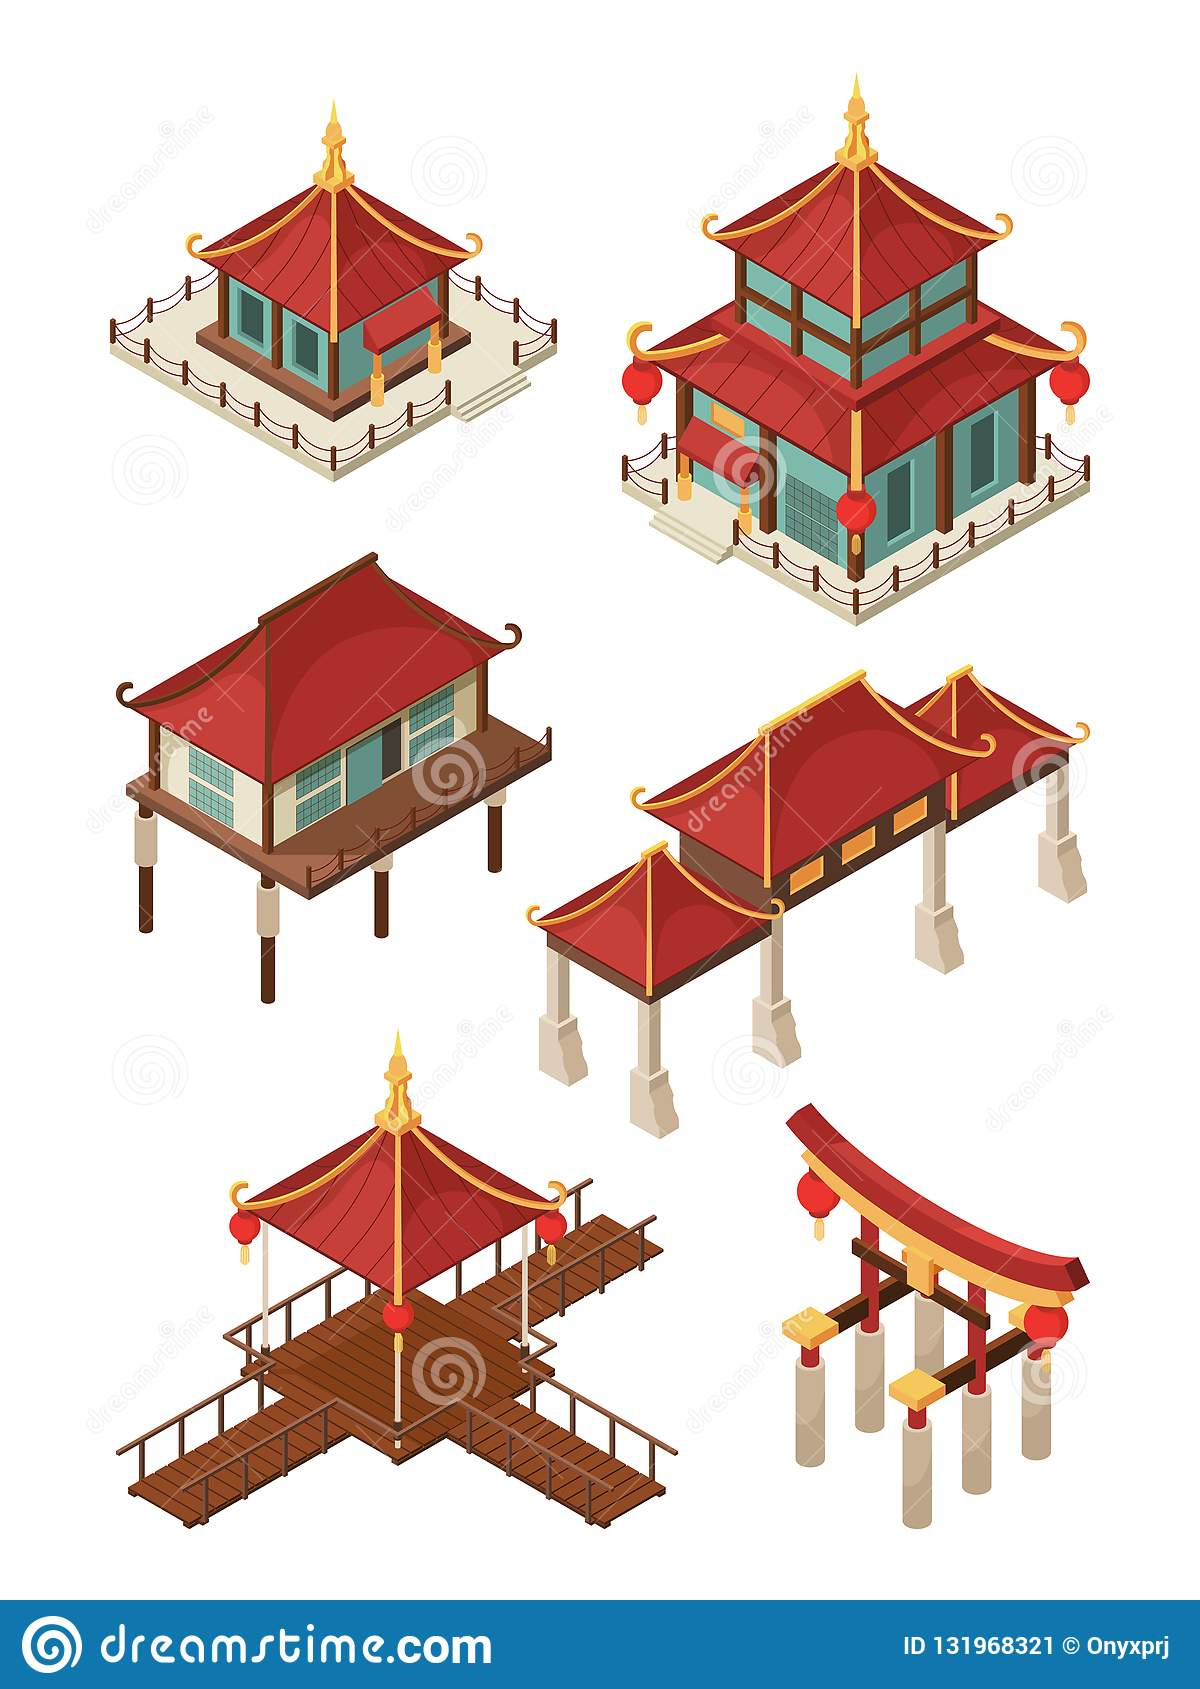 Asian Architecture Isometric Traditional Chinese And Japan Houses Buildings Roof Vector 3d Illustrations Stock Vector Illustration Of Design Gate 131968321